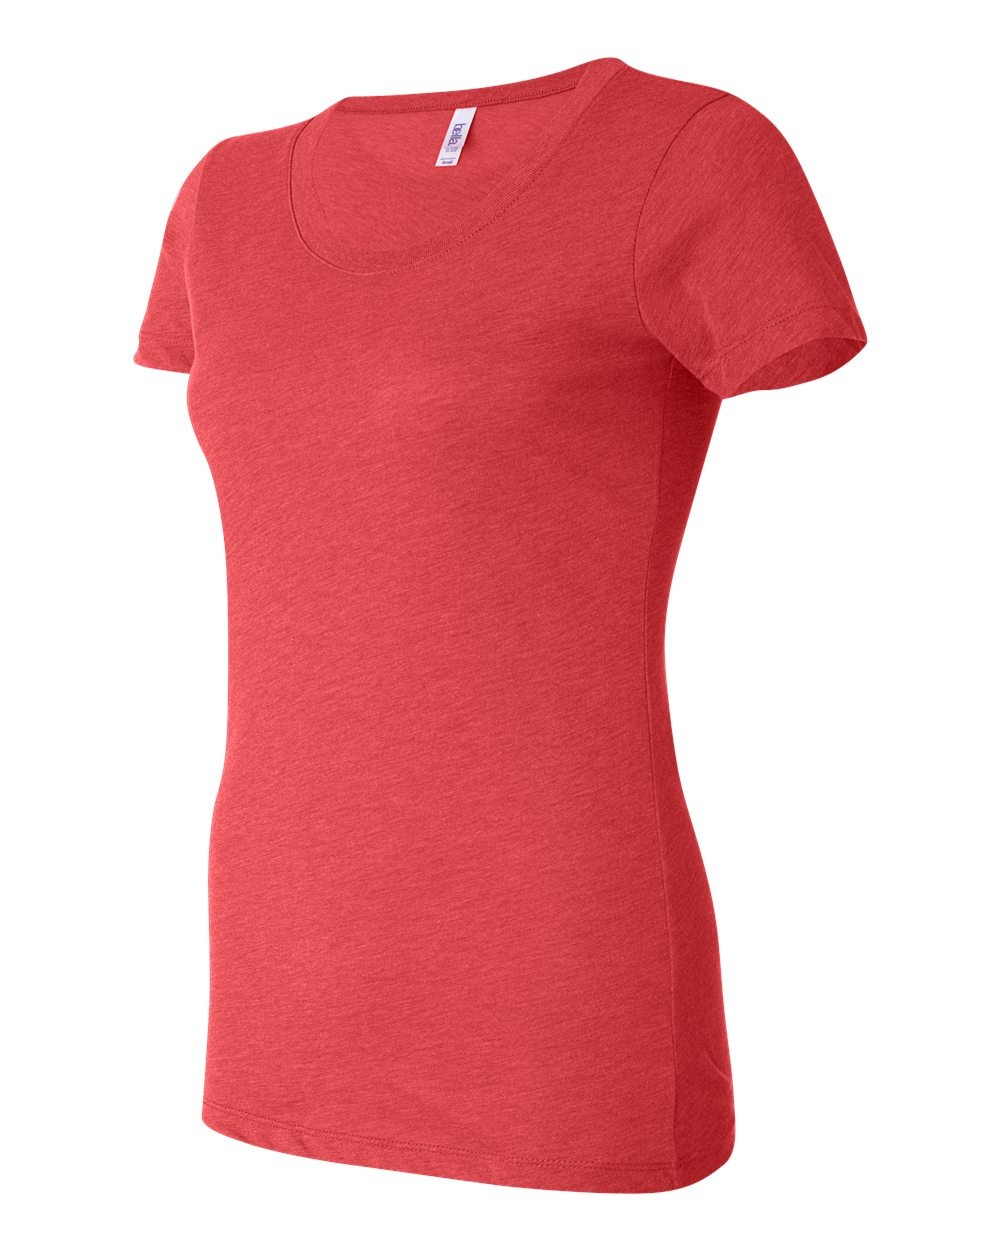 Bella-Canvas-Women-039-s-Triblend-Short-Sleeve-T-Shirt-B8413-S-2XL thumbnail 24